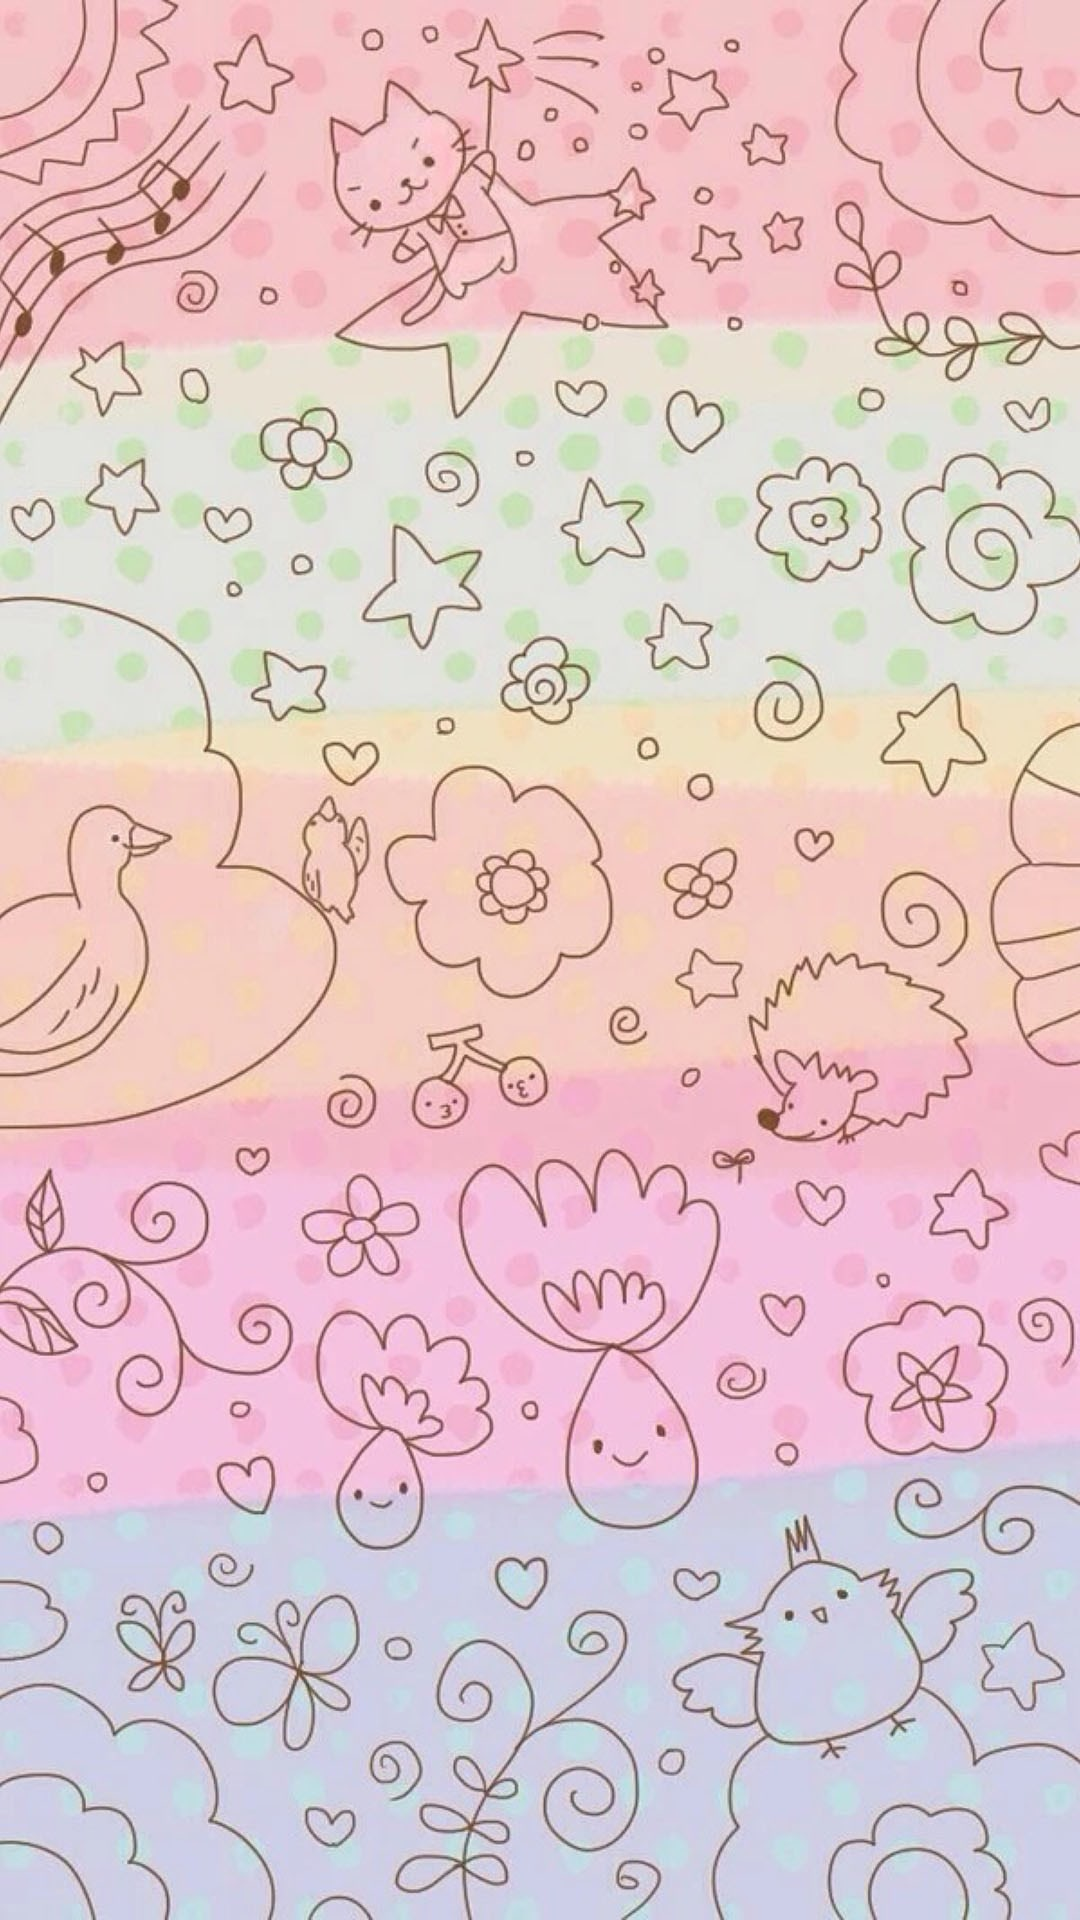 1080x1920 Dreamy Anime Cute Kitten Pattern Painting Background #iPhone #6 #wallpaper